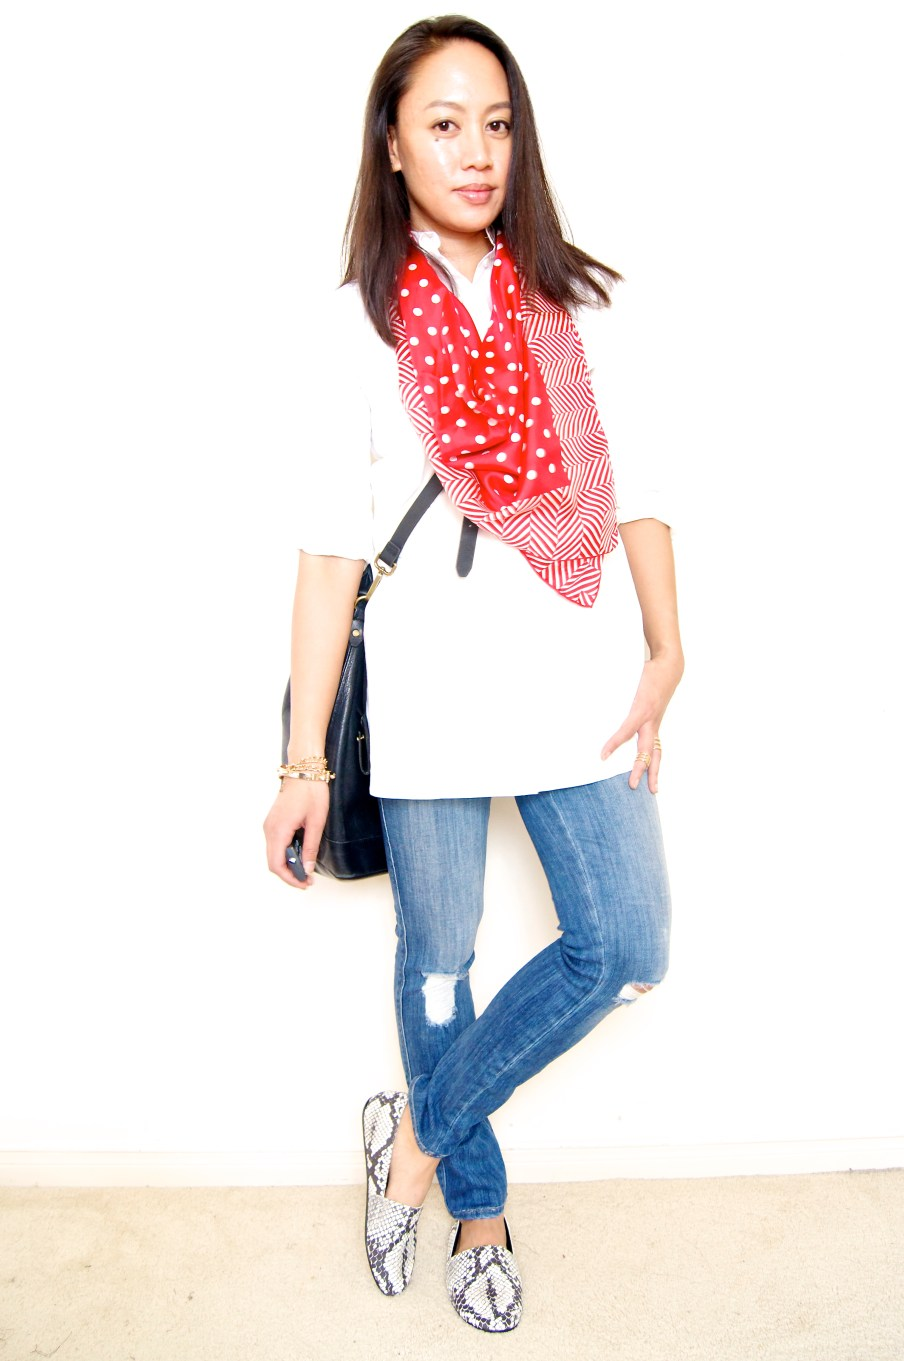 Boyfriend Tunic Shirt + Red Scarf + Distressed Denim + Bucket Bag